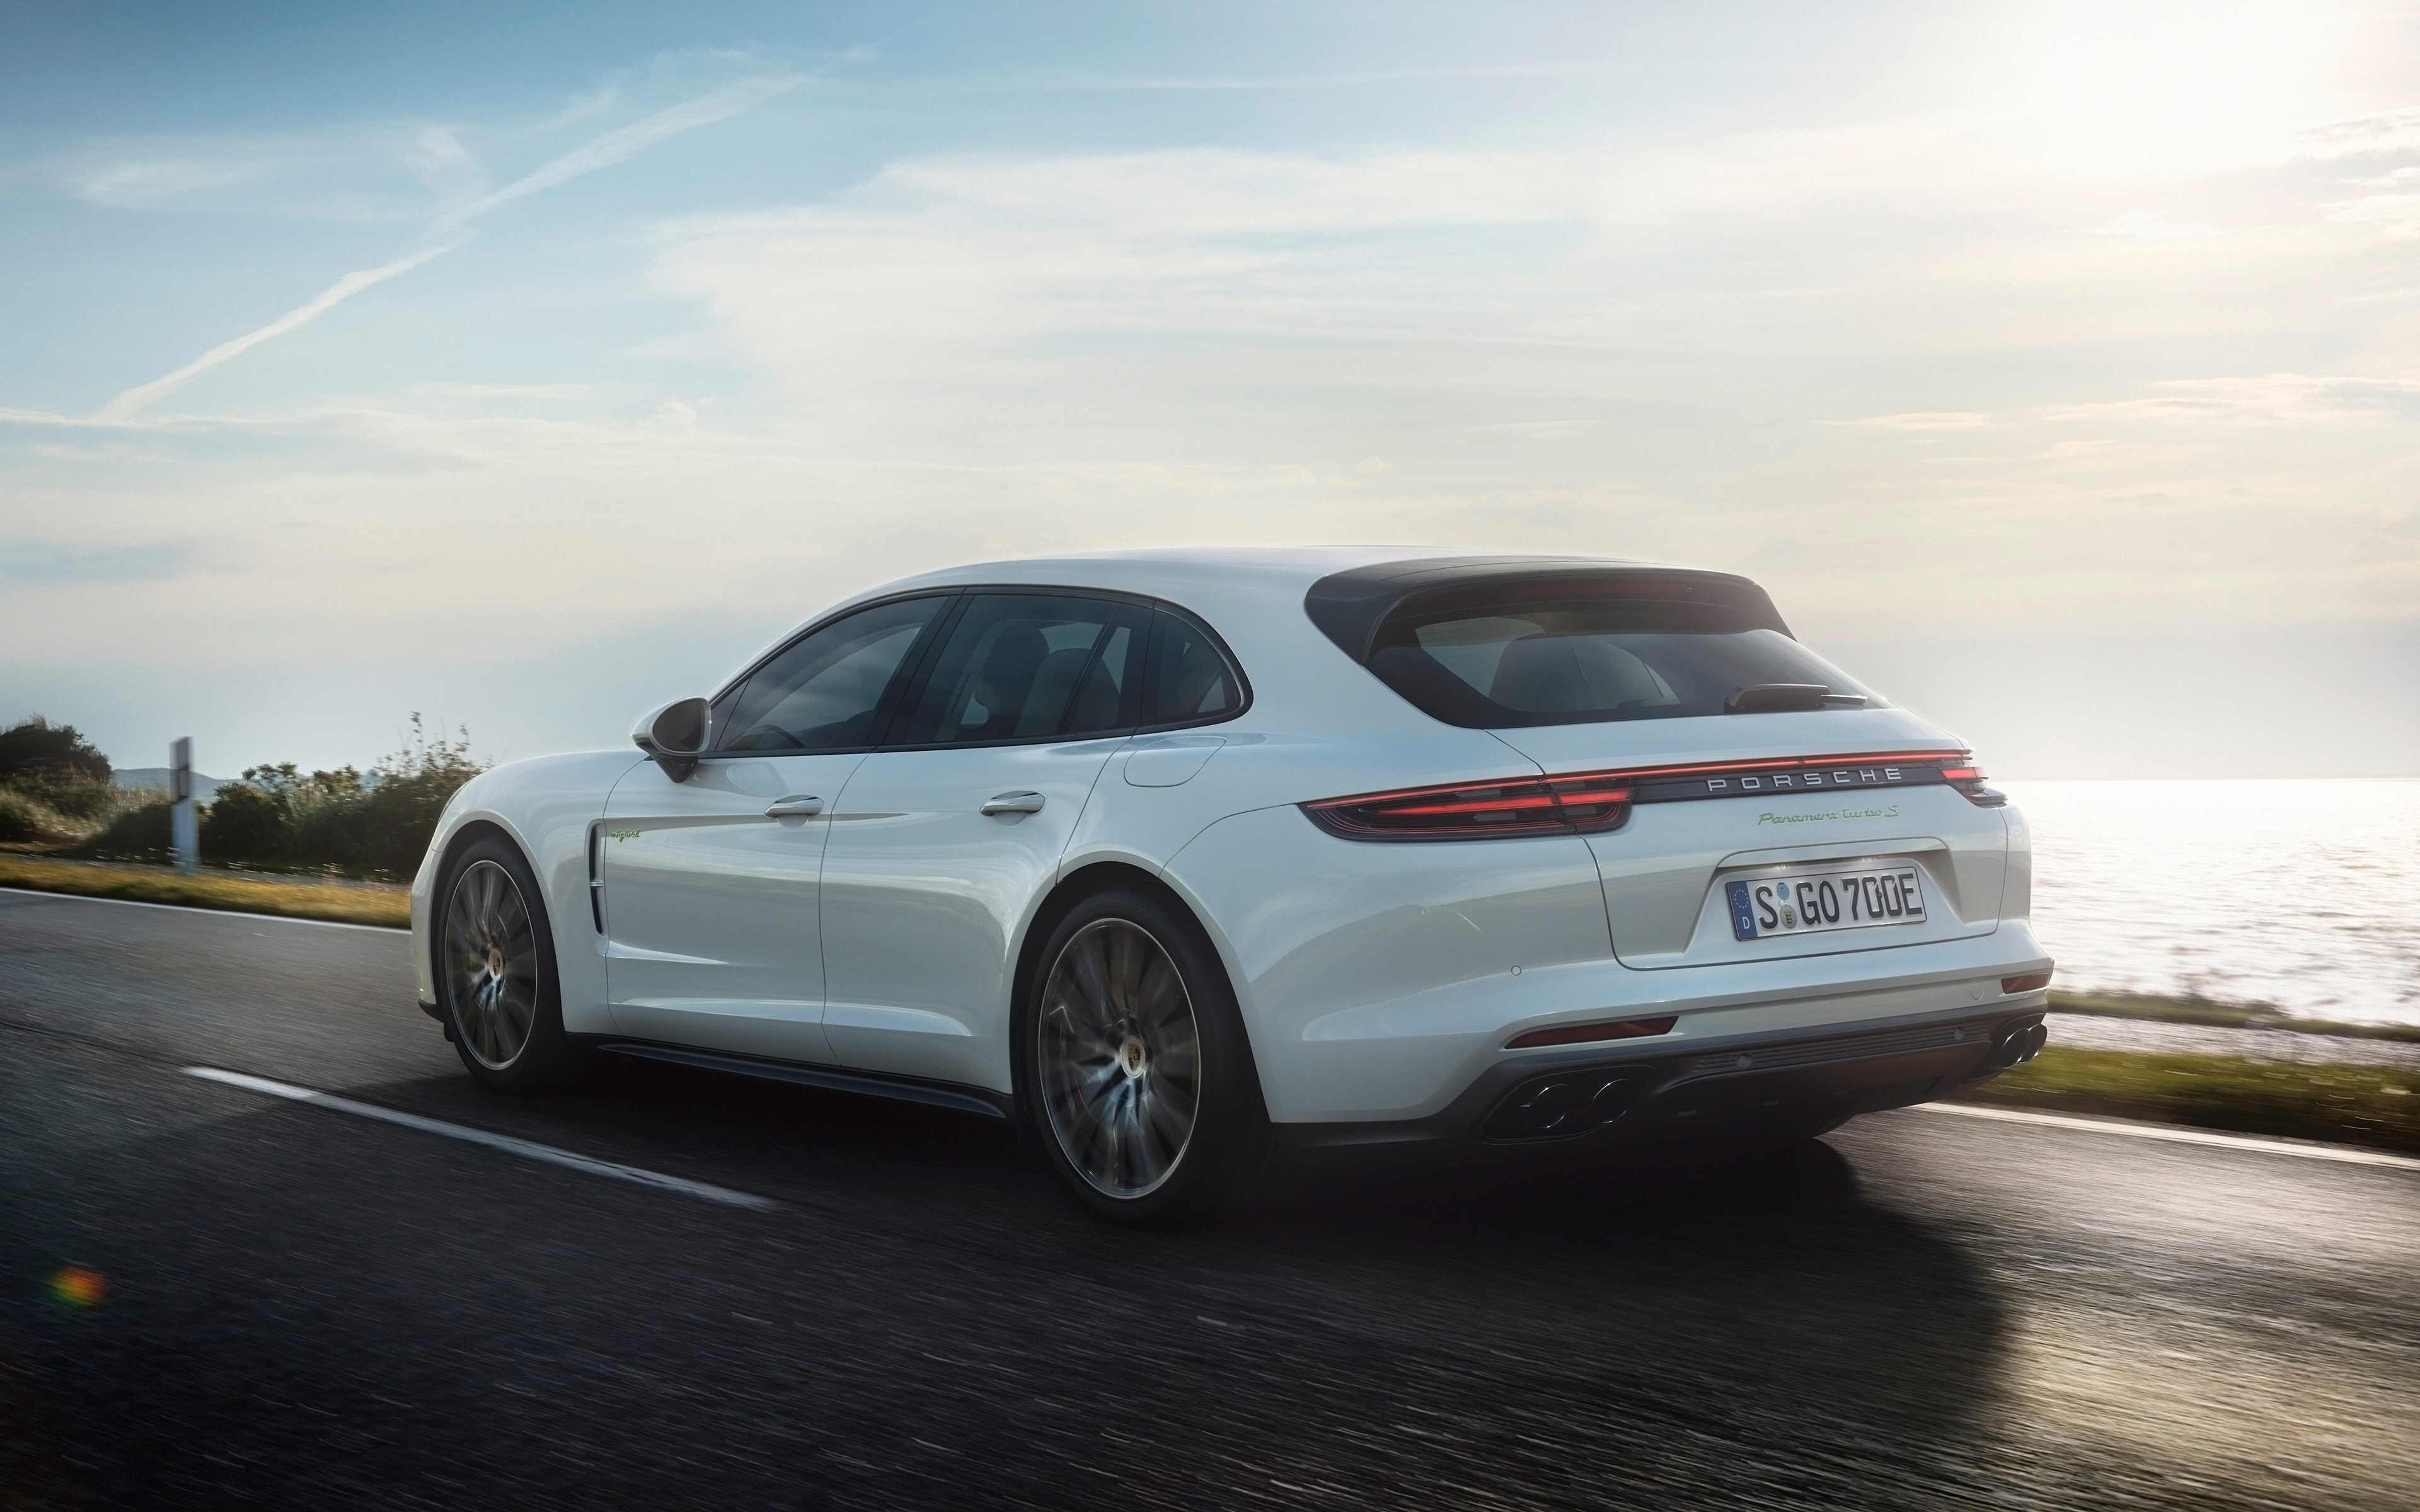 Porsche Panamera Turbo Sport Turismo 4k specifications